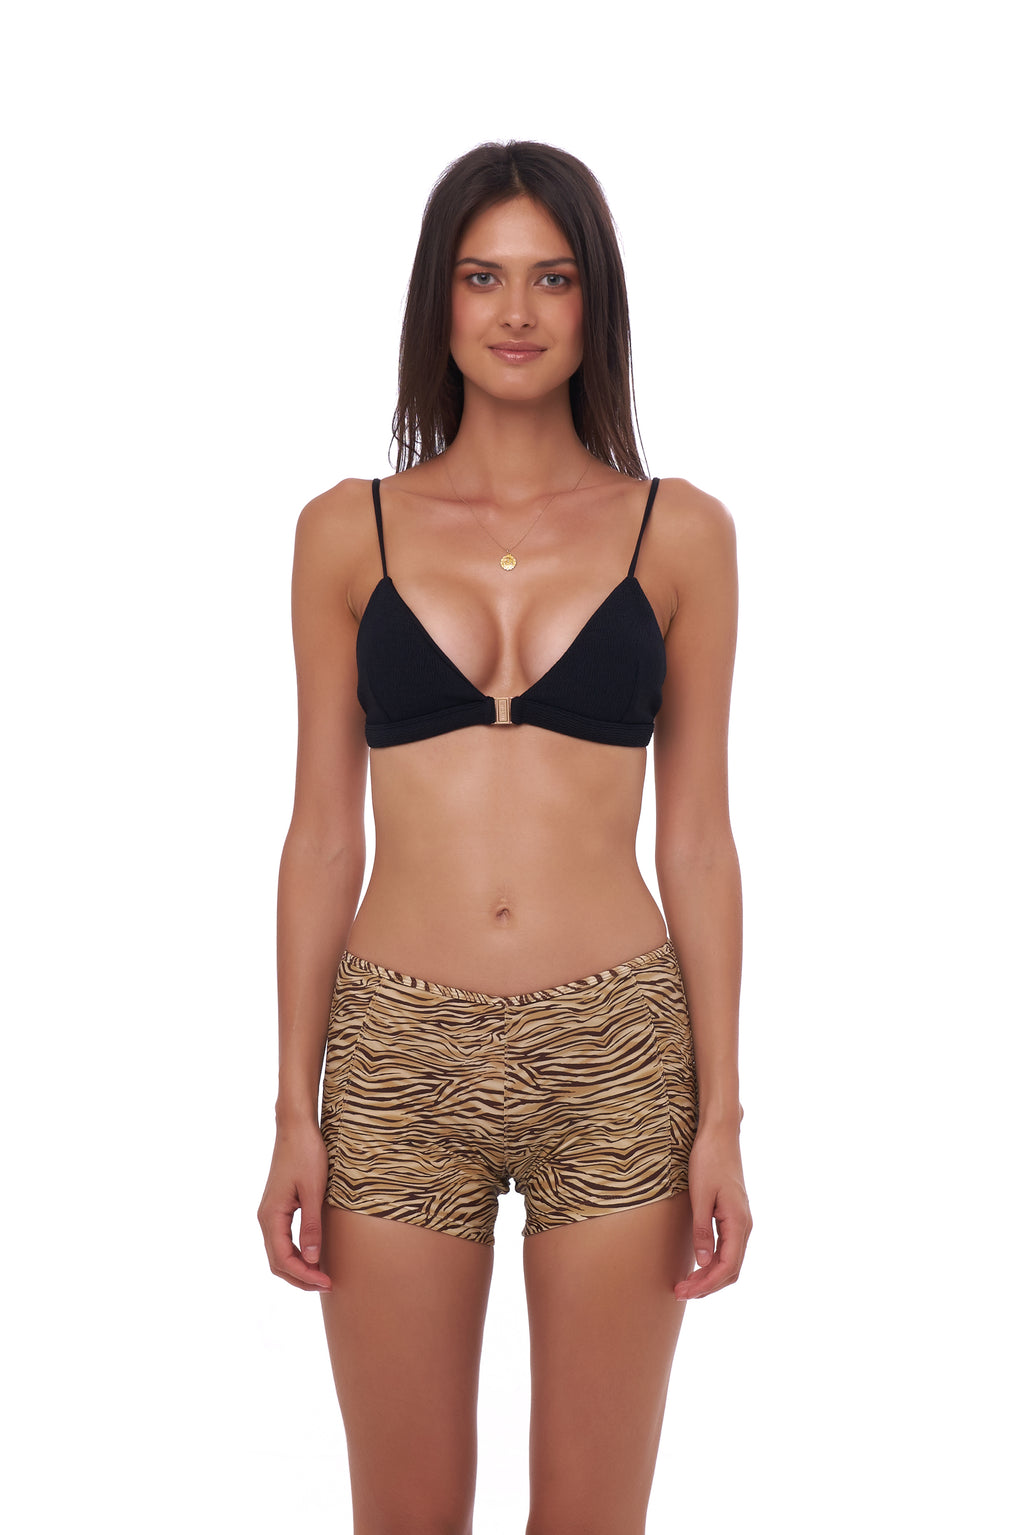 Storm Swimwear - Echo beach - Pant in Tiger Print